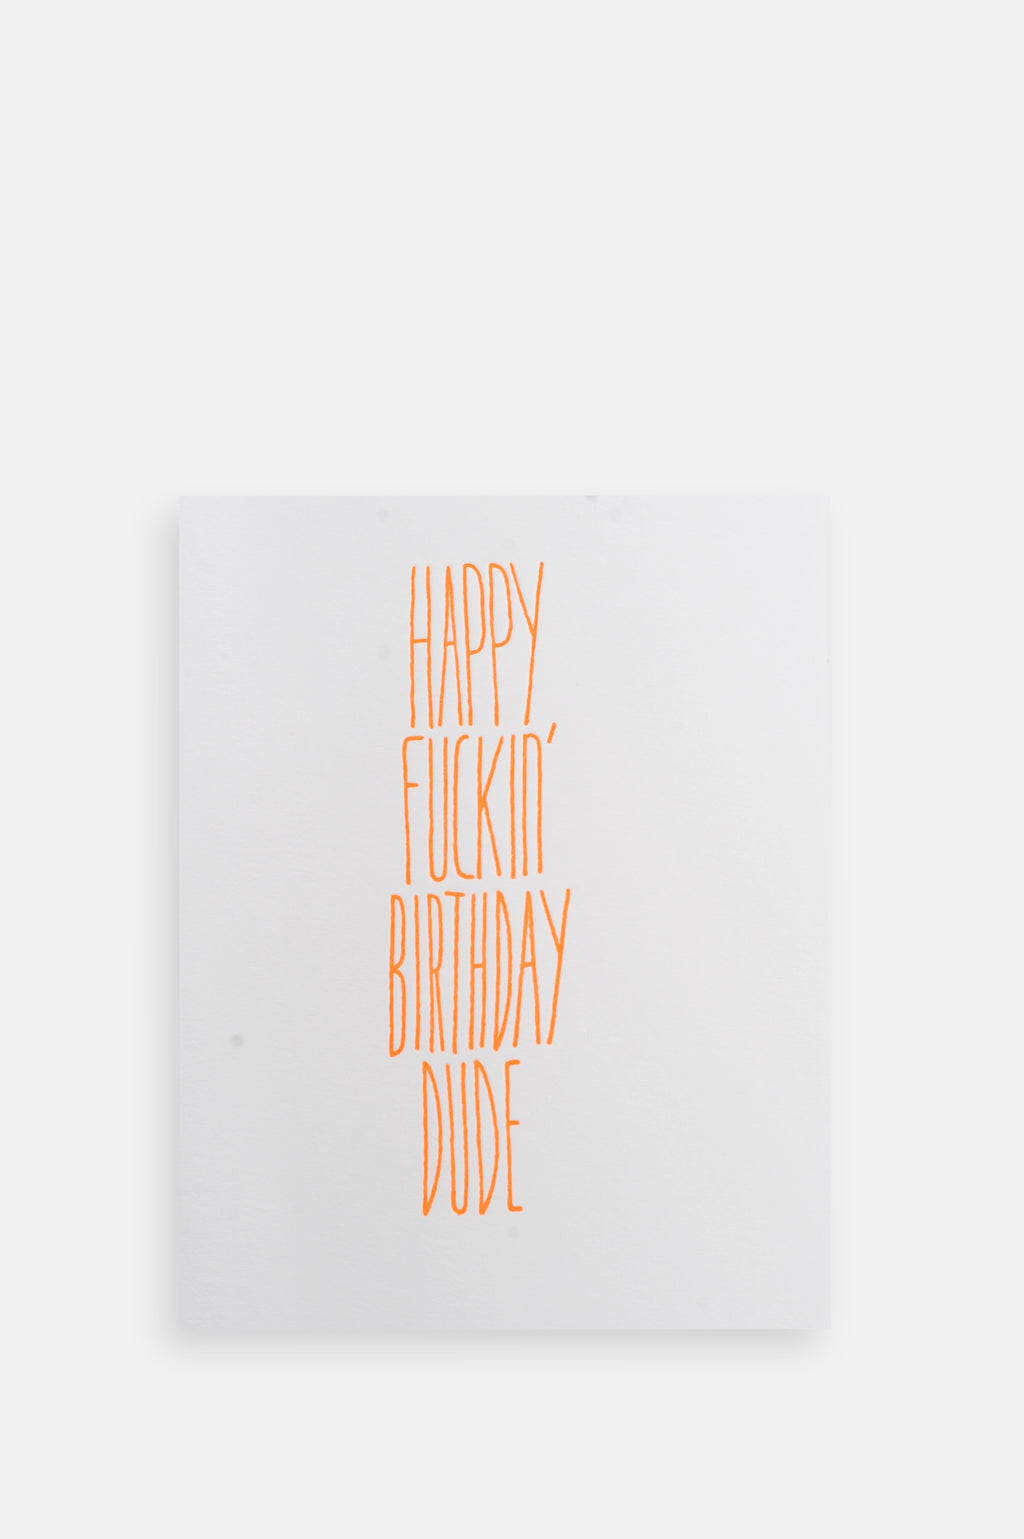 Fuckin Bday Dude Card